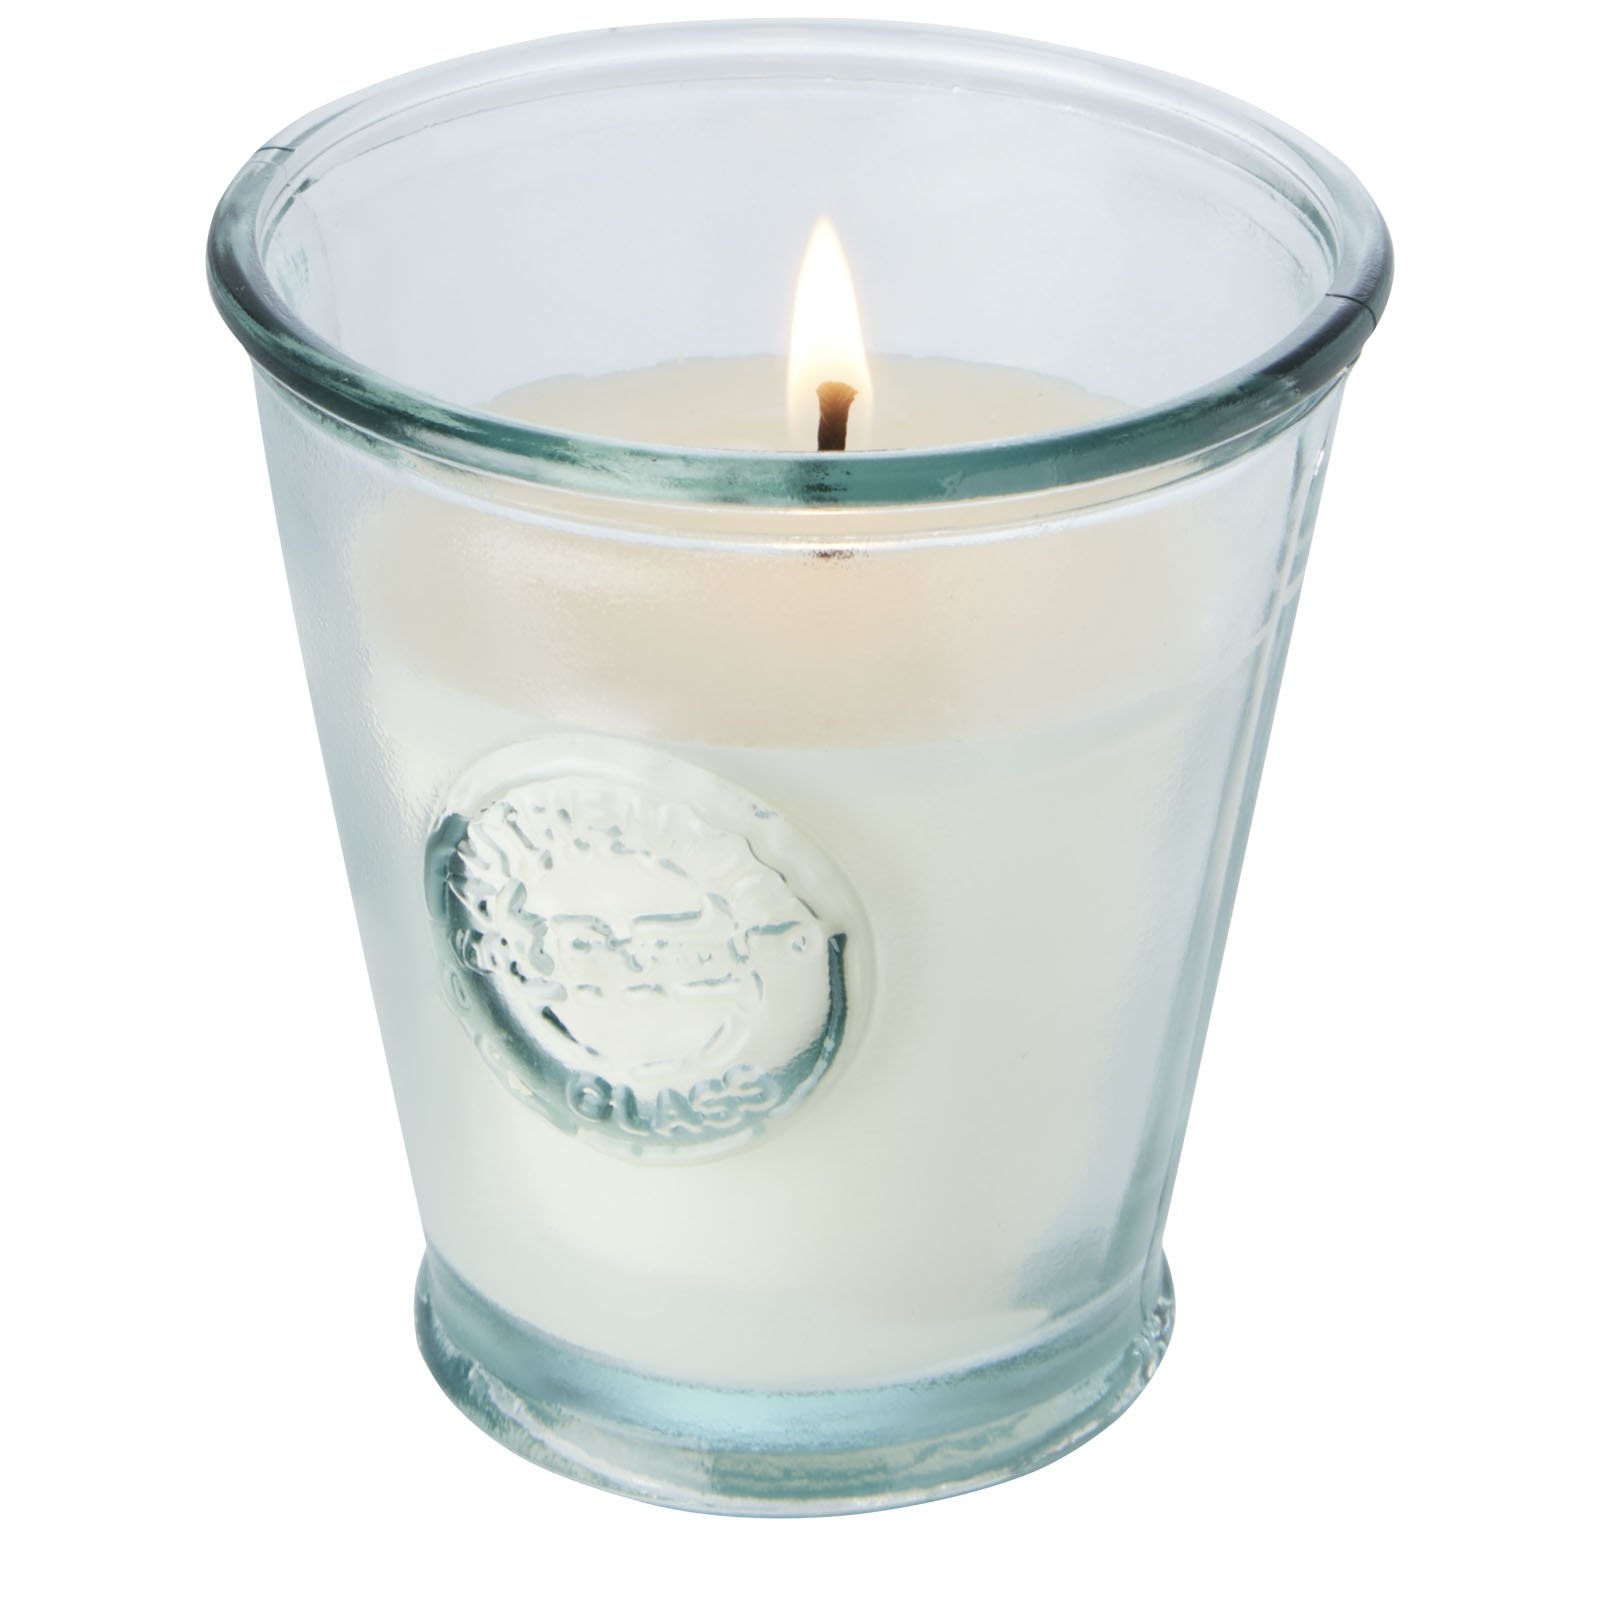 Authentic Luzz soybean candle with recycled glass holder